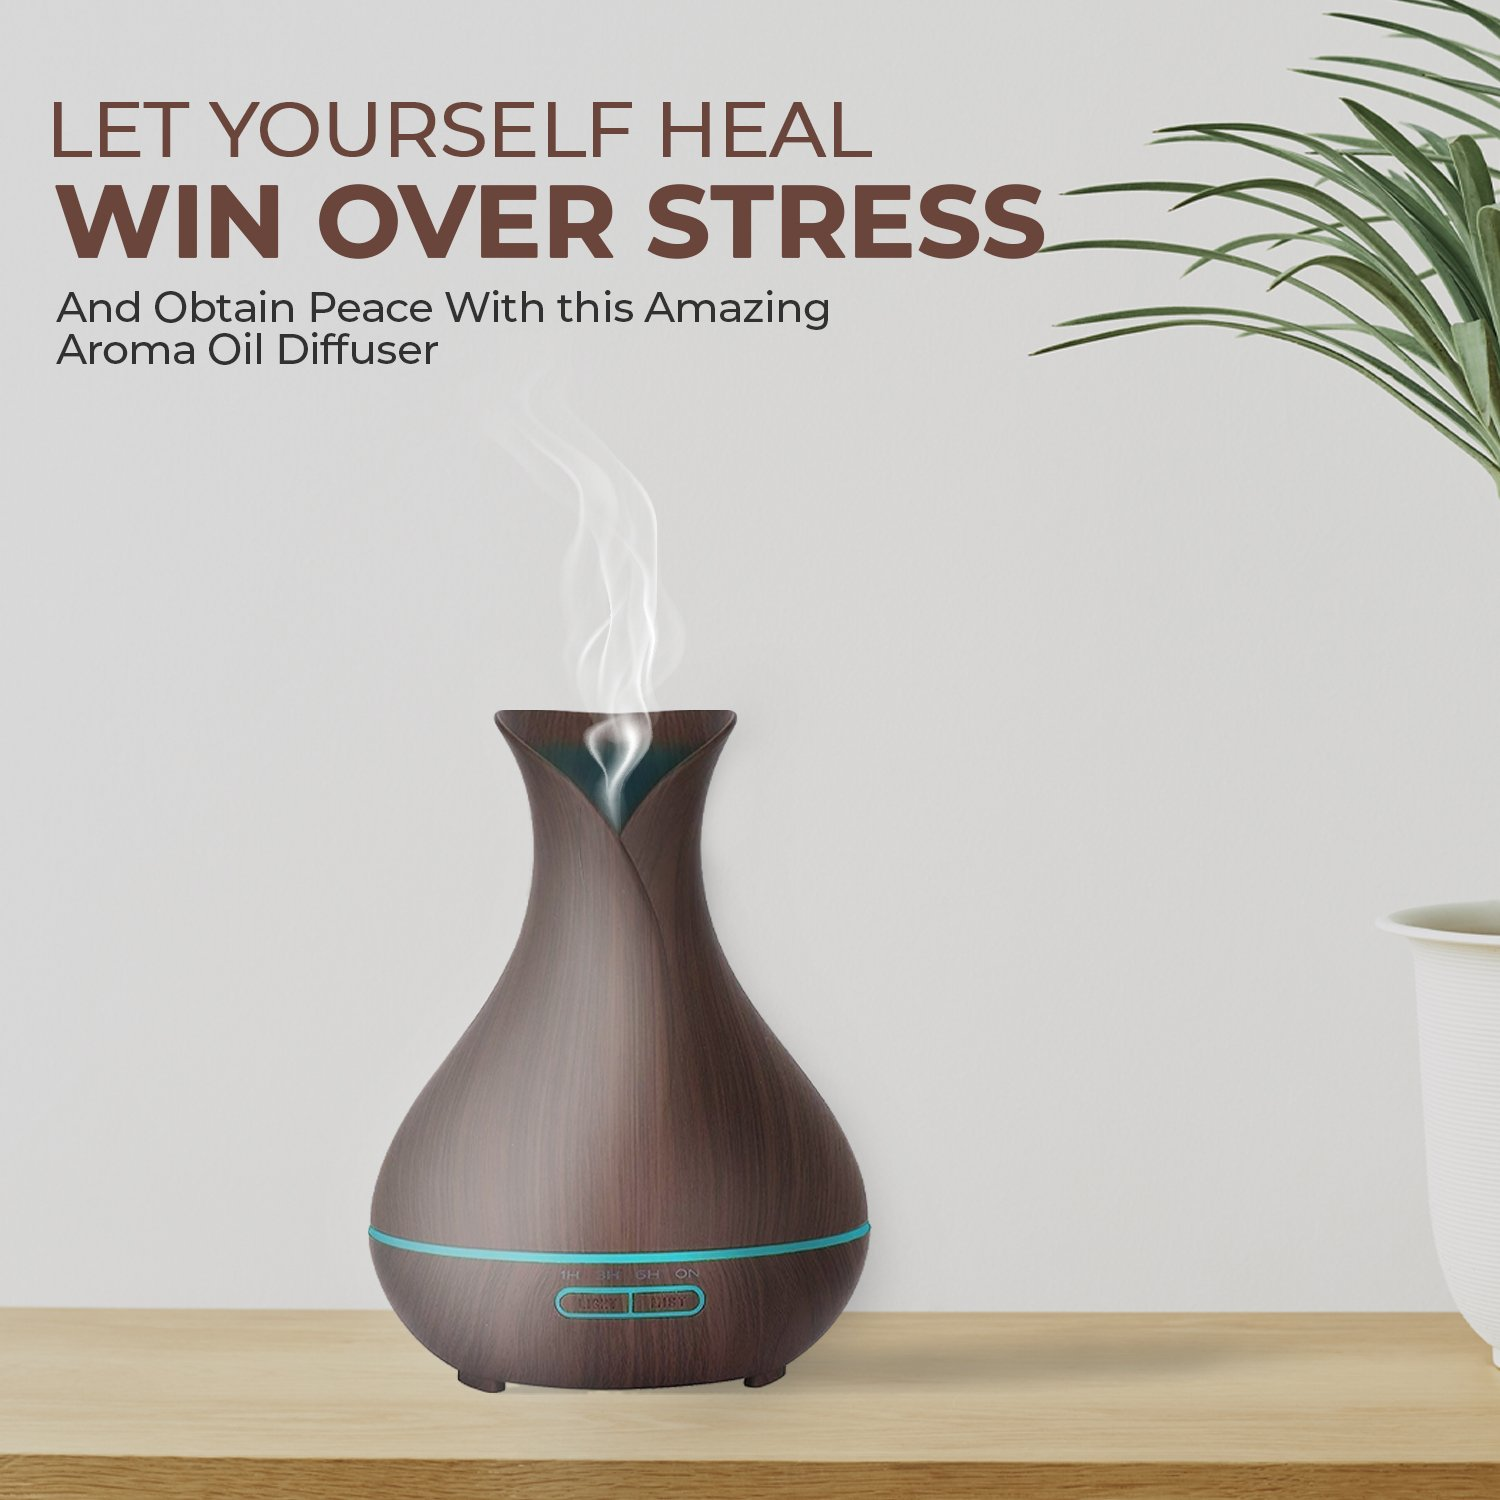 Are Oil Diffuser Bad for Your Lungs?